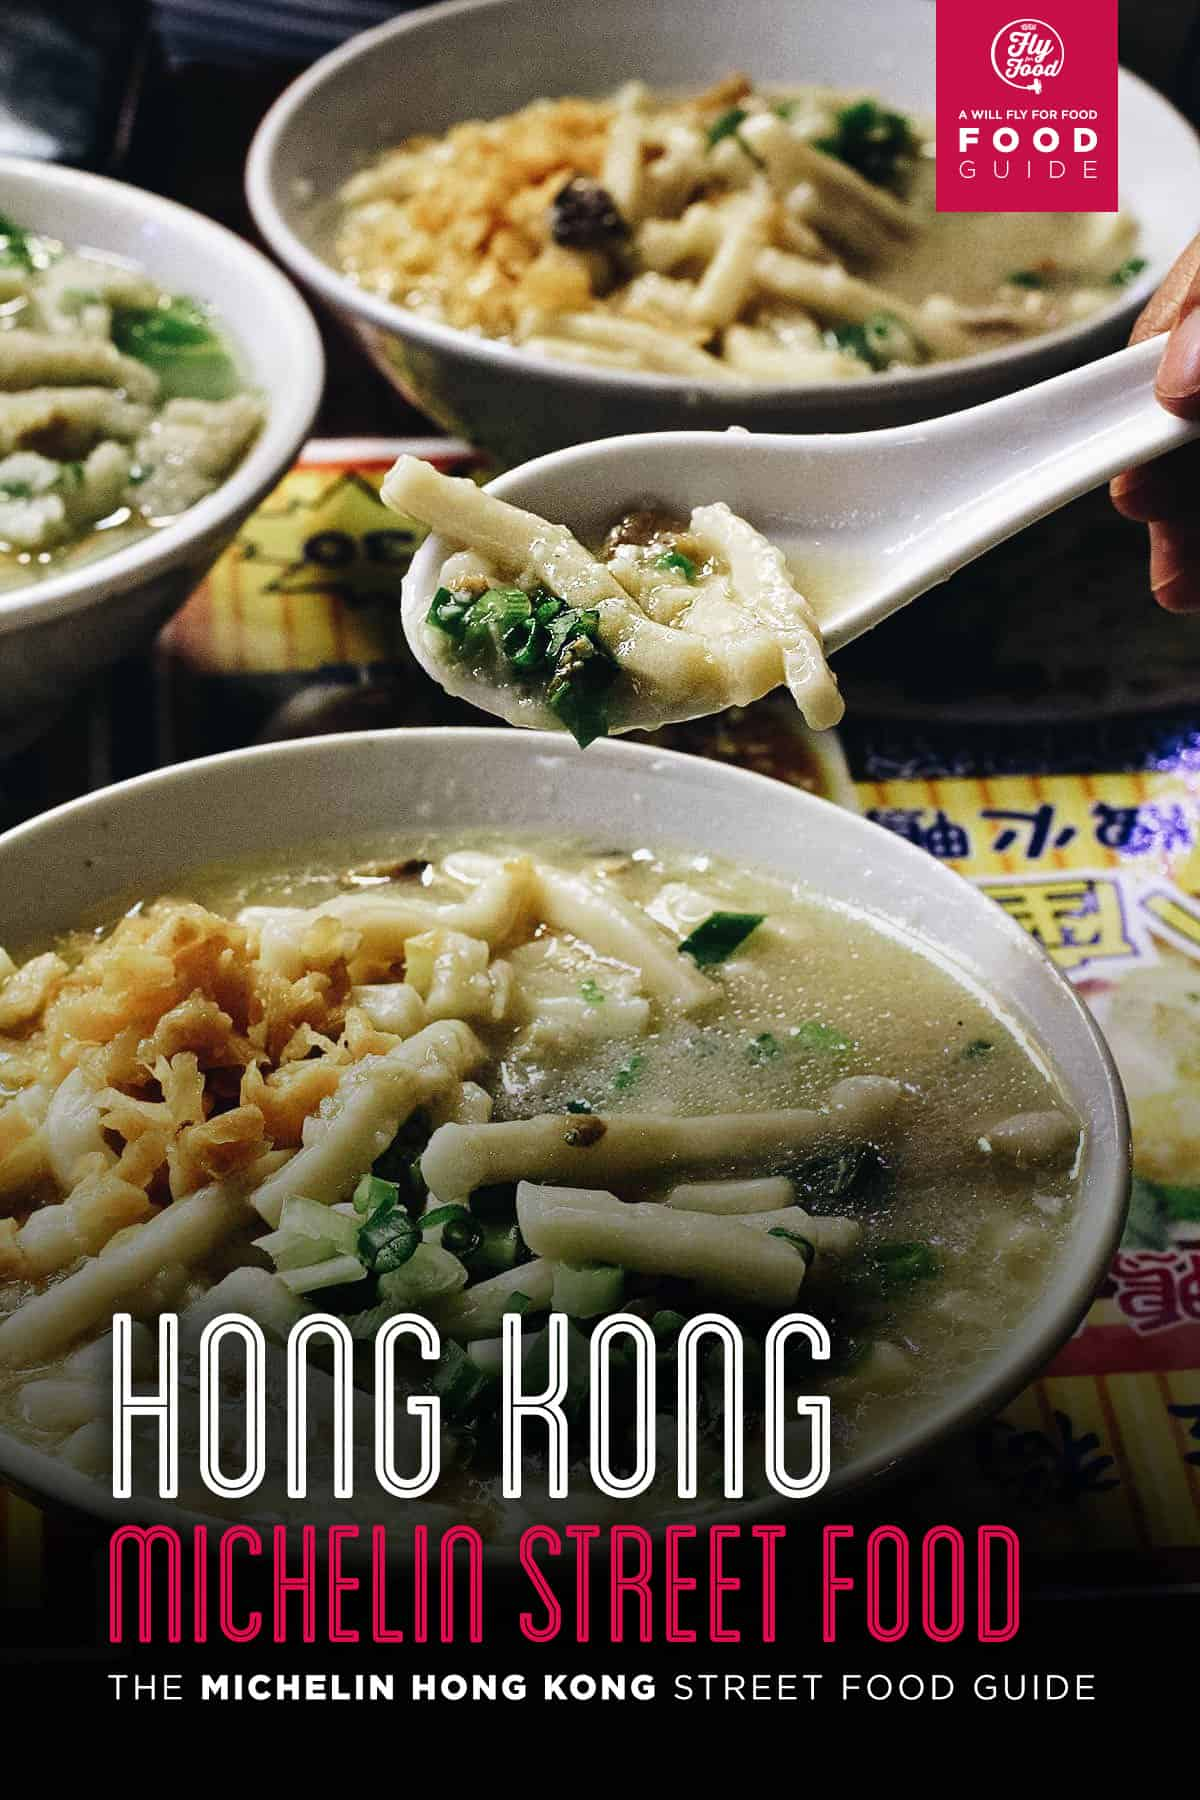 Bowl of noodles, Hong Kong